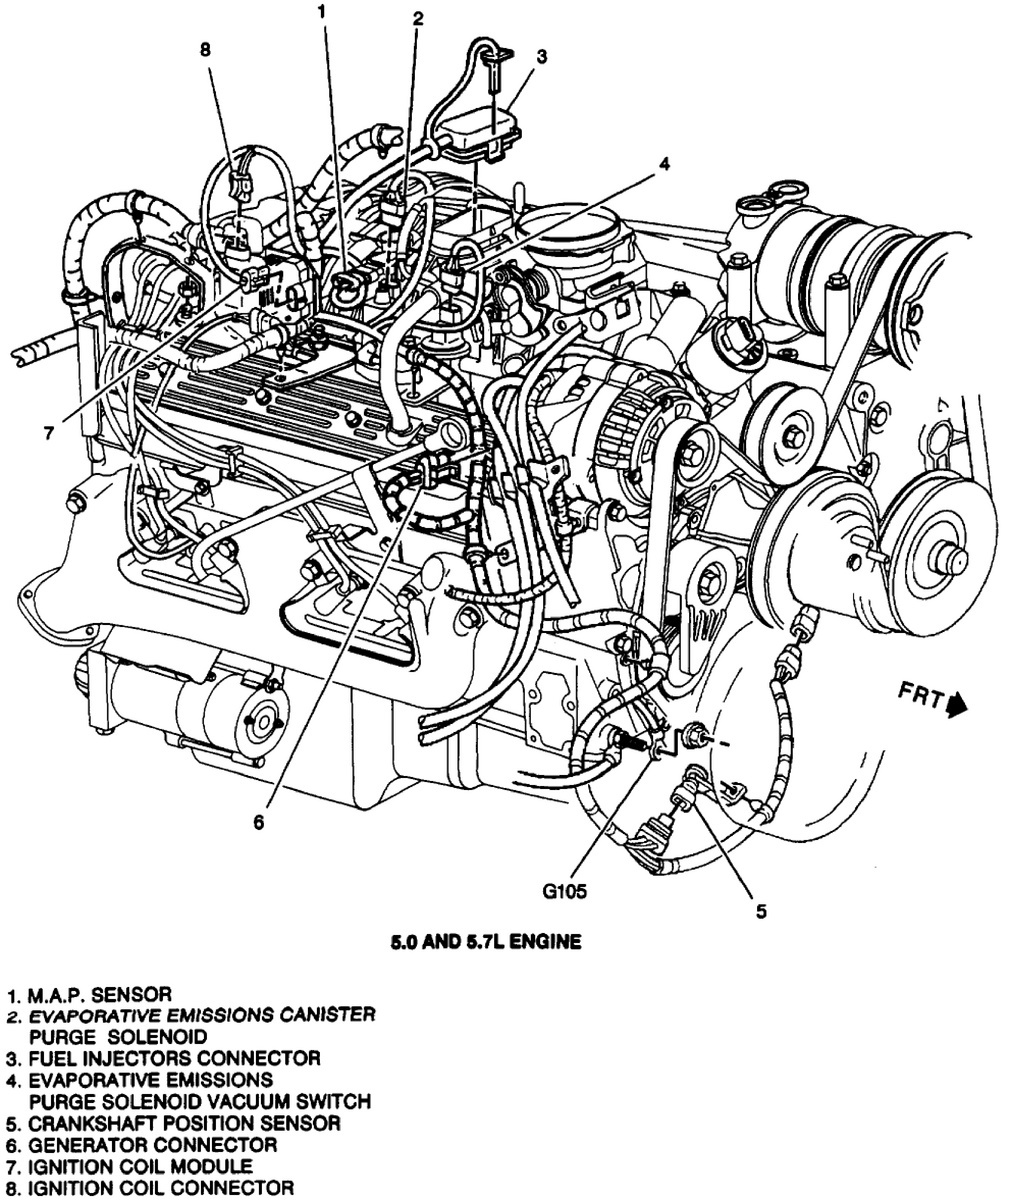 gmc 3 8 engine diagram wiring diagram u2022 rh championapp co Chevy Impala 3.8 Engine Diagram GM 3.5 V6 Engine Diagram